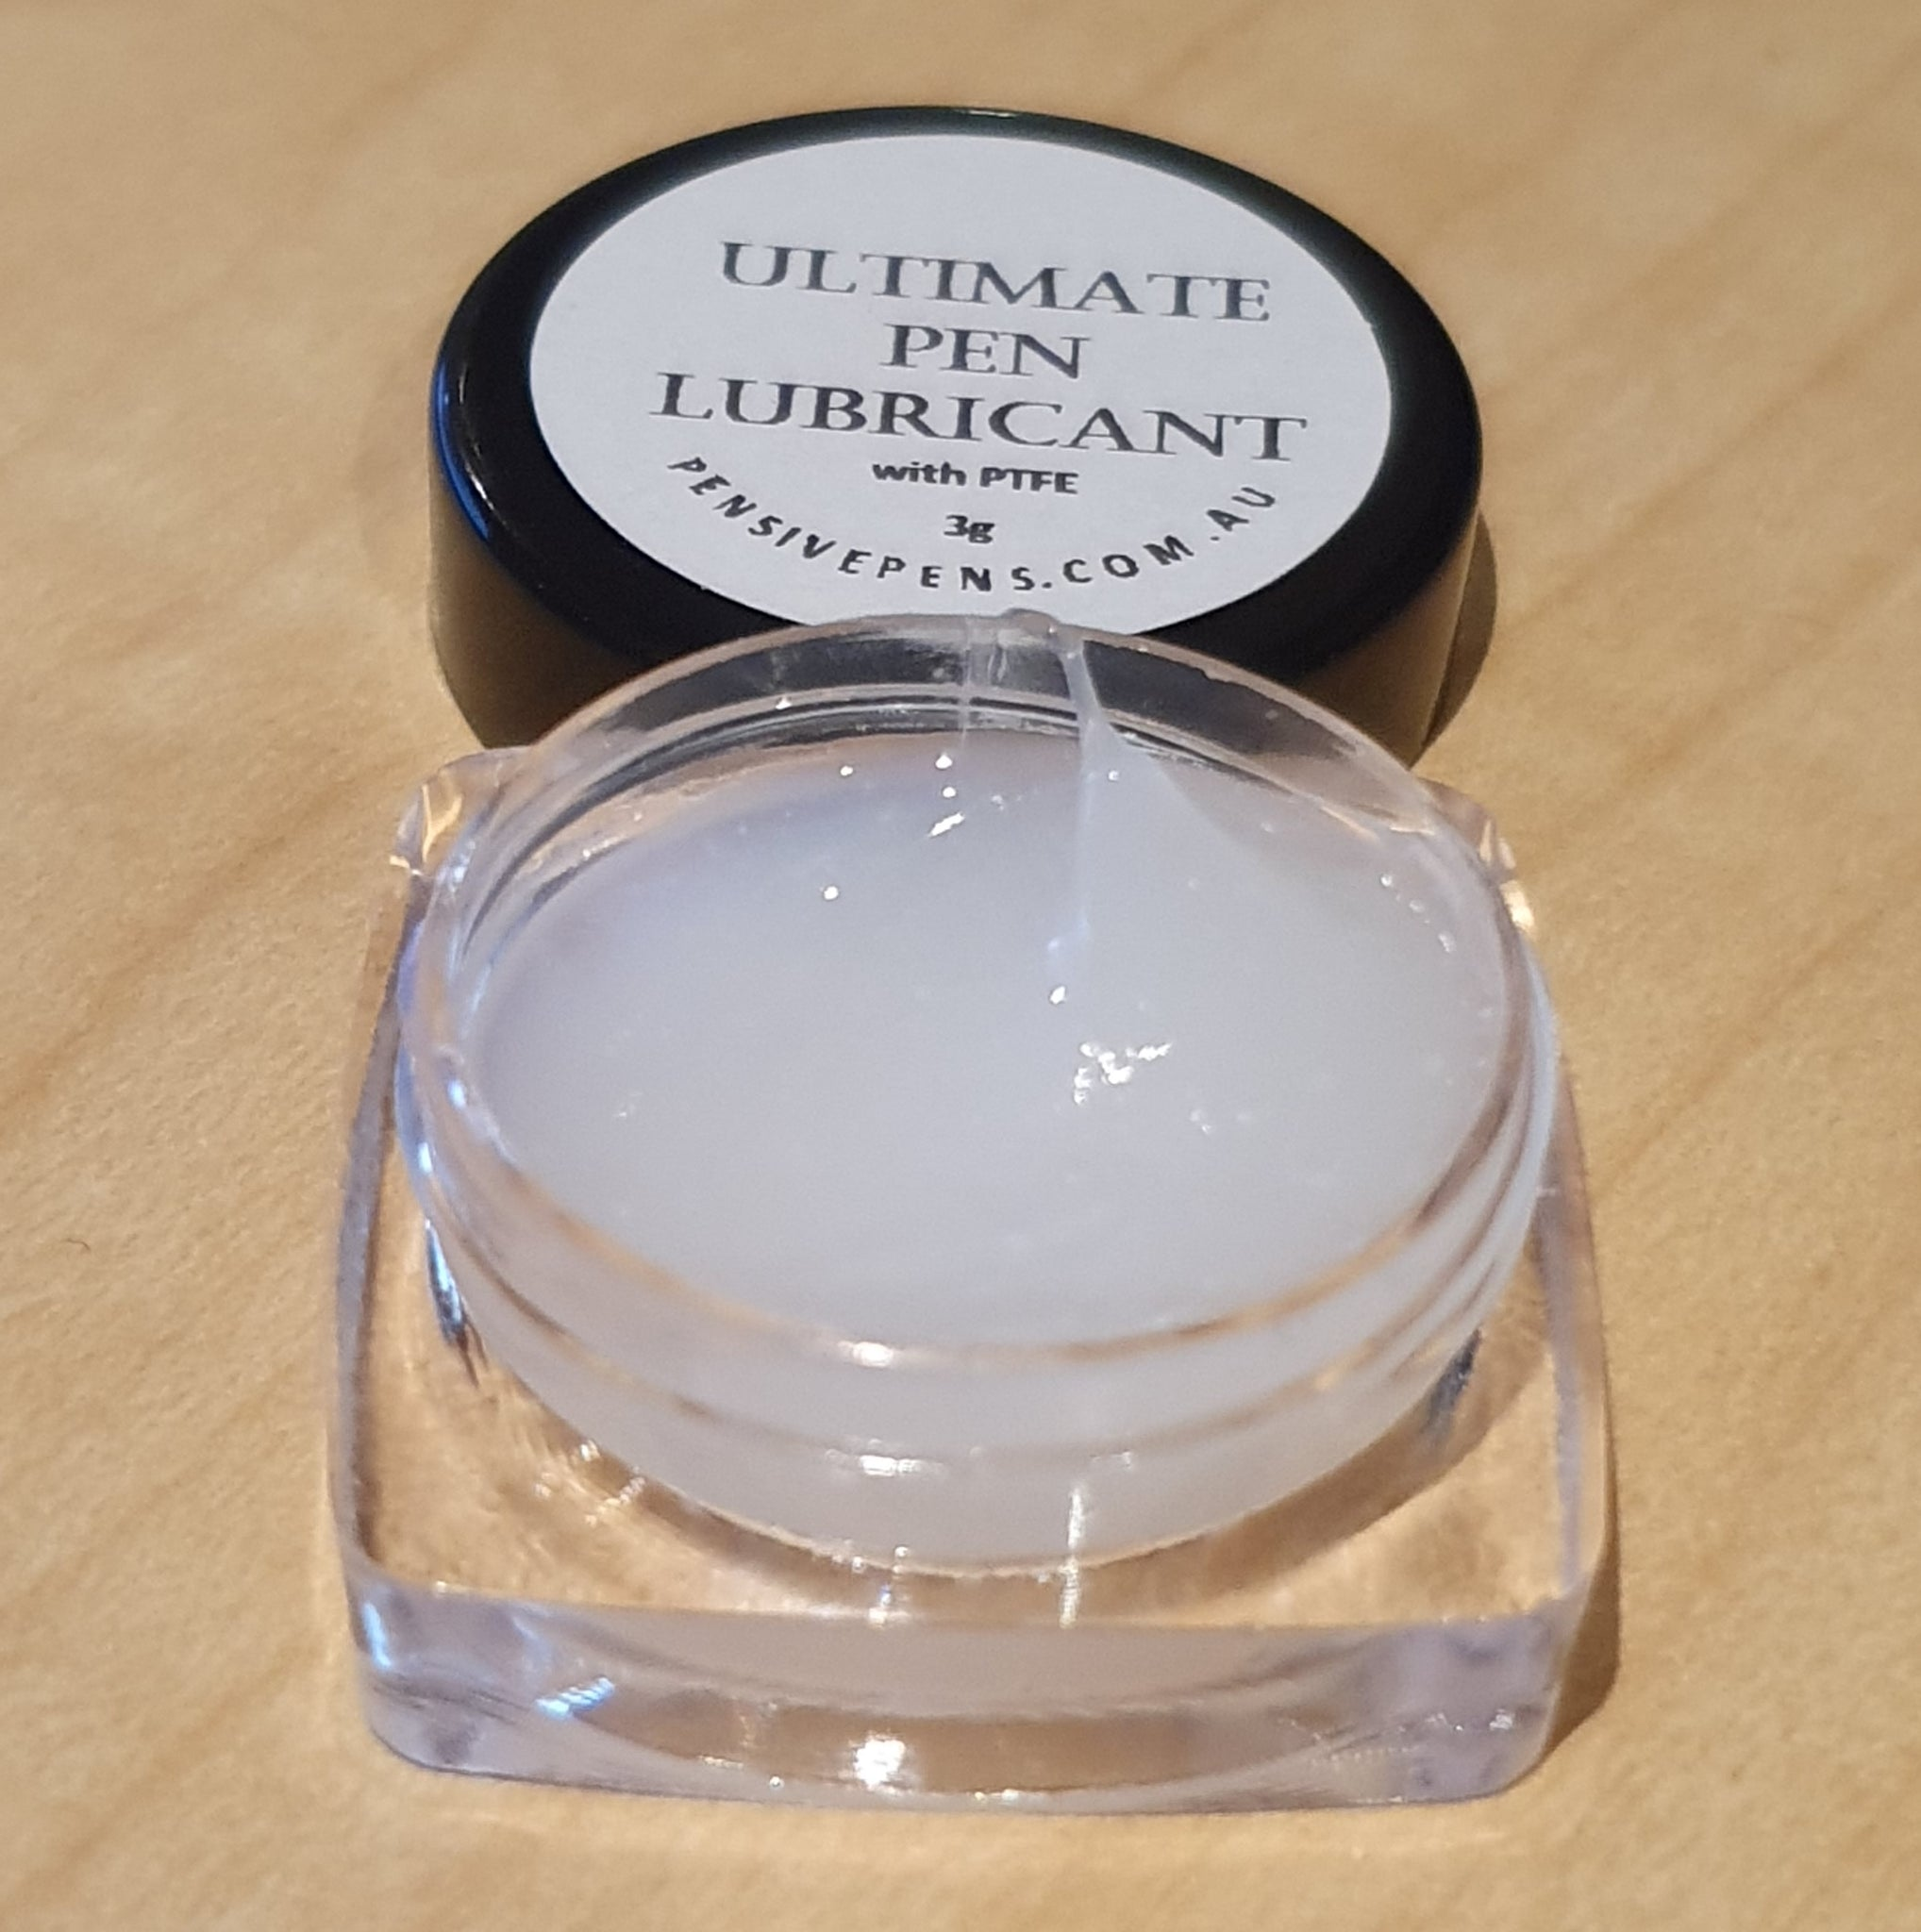 Ultimate Pen Lubricant - With PTFE - Silicone Grease